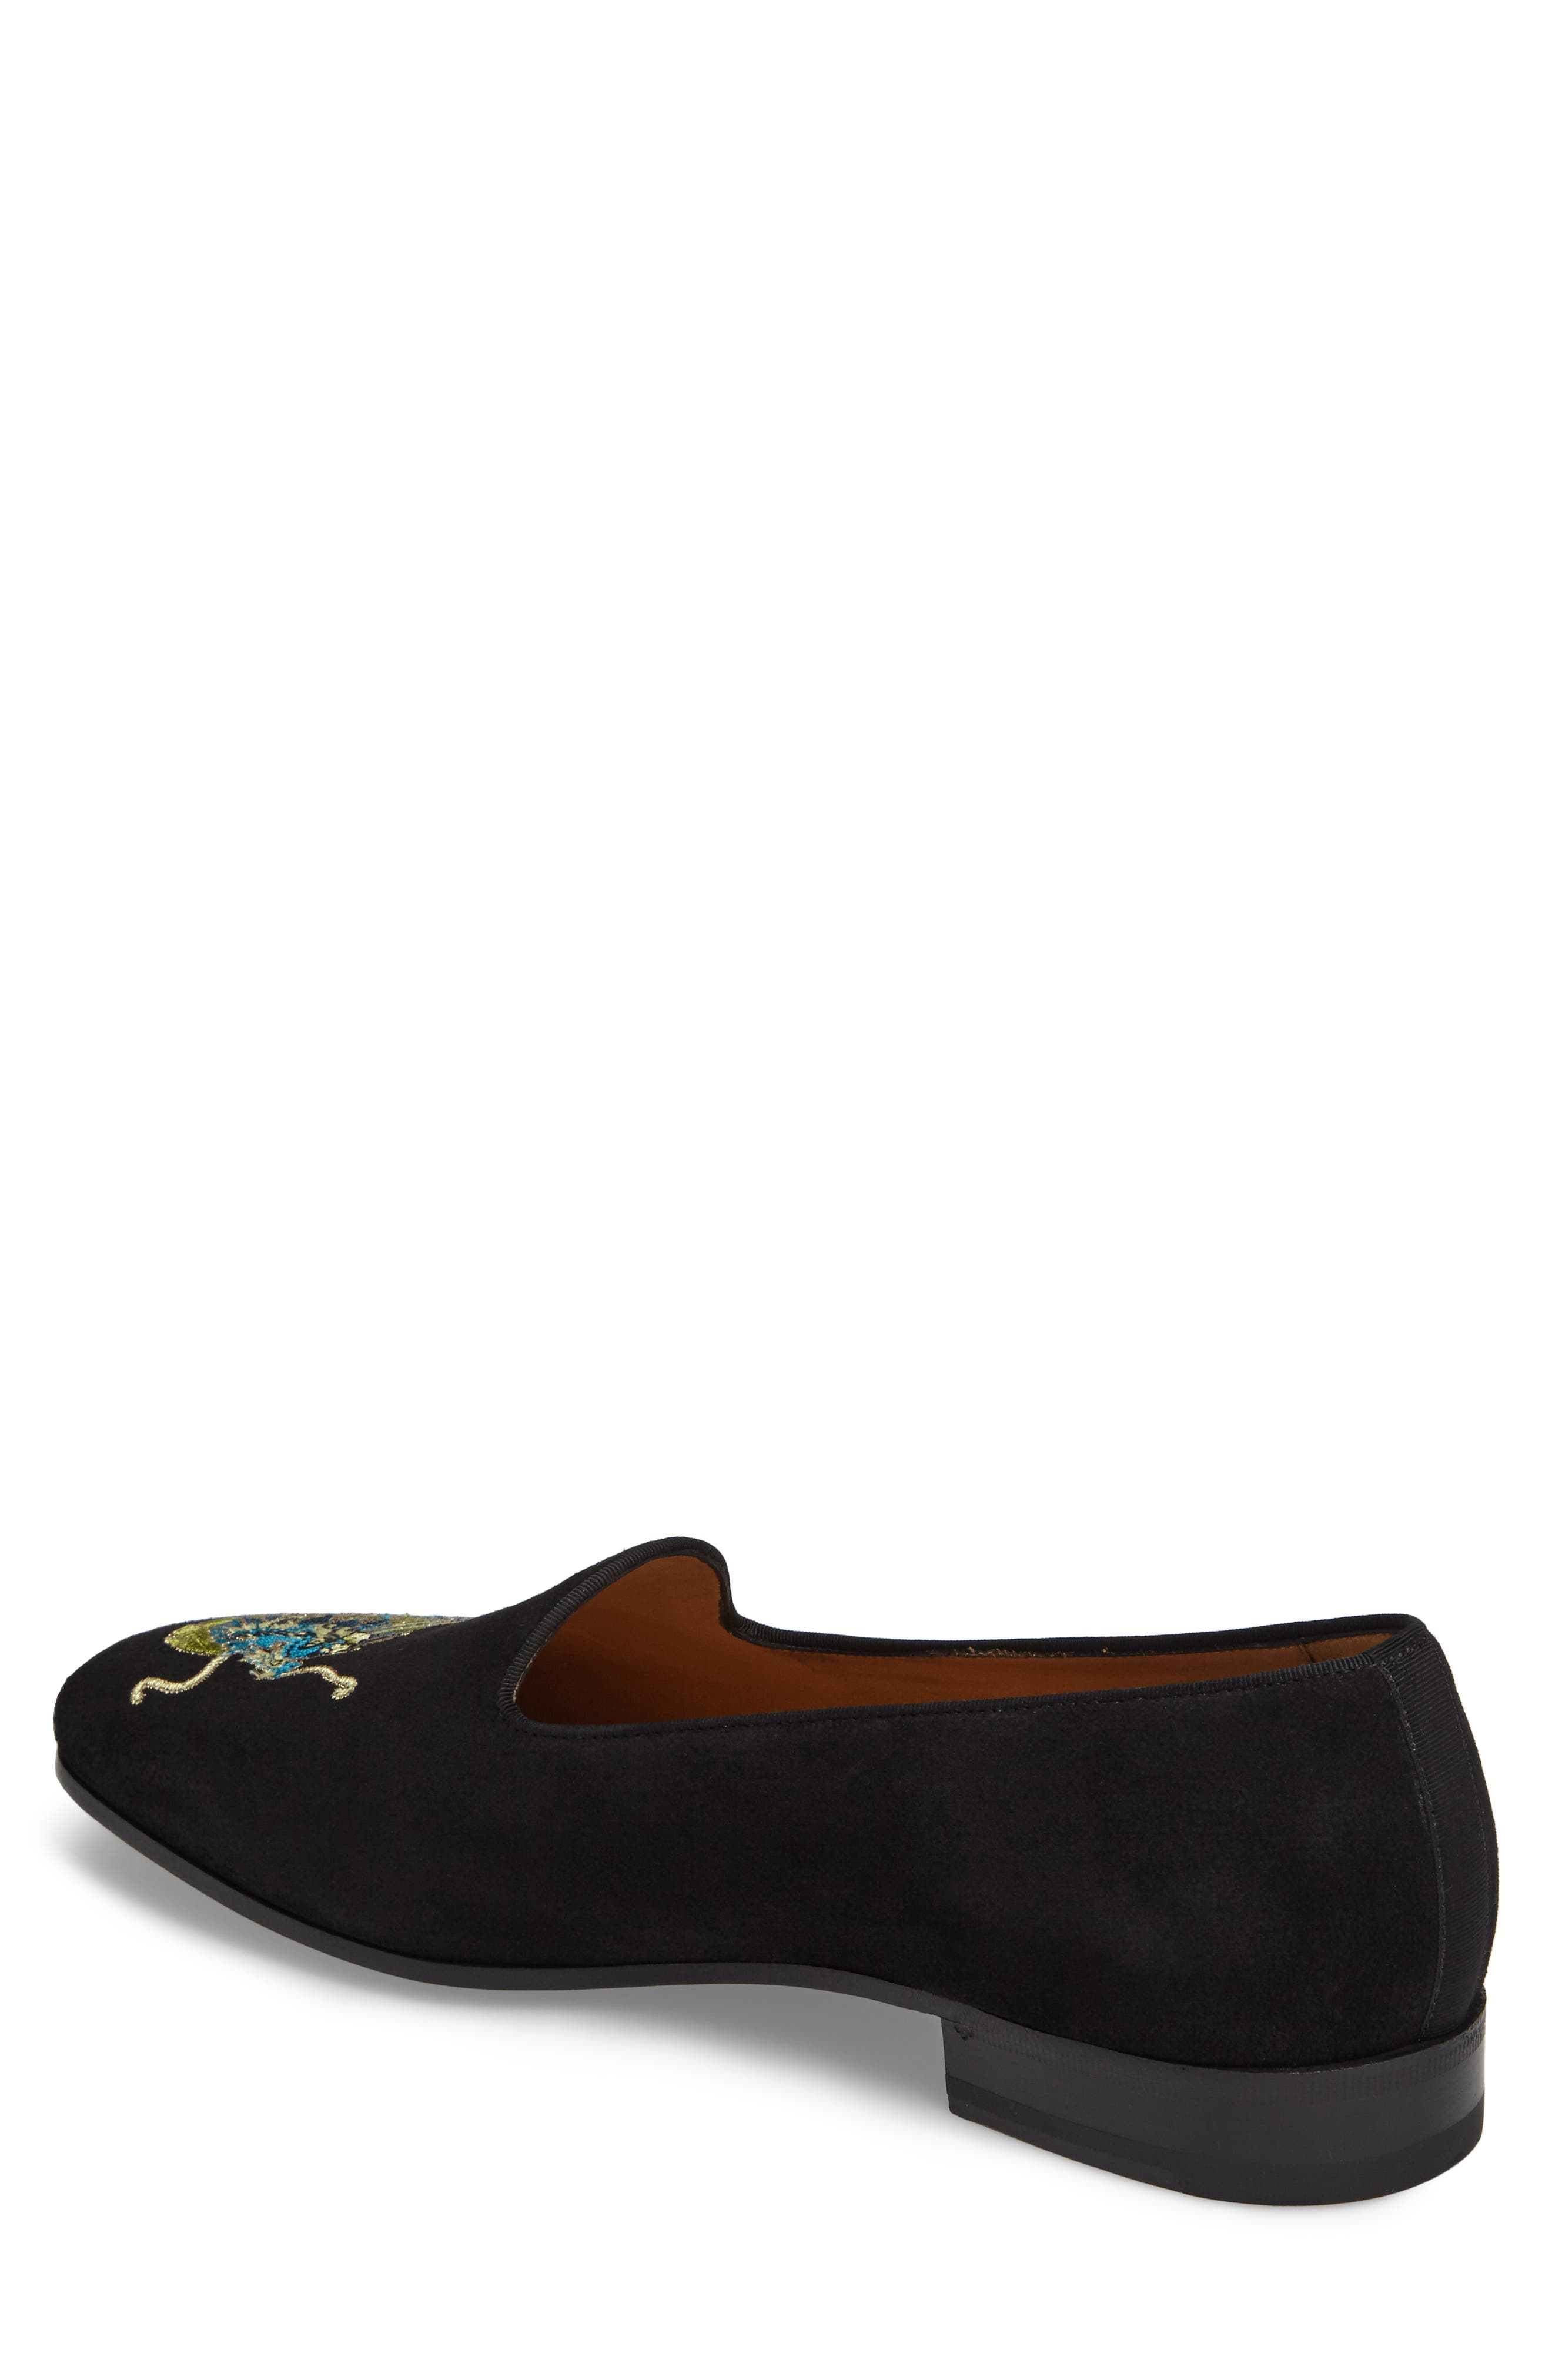 New Gallipoli Dragon Loafer,                             Alternate thumbnail 2, color,                             Black Suede